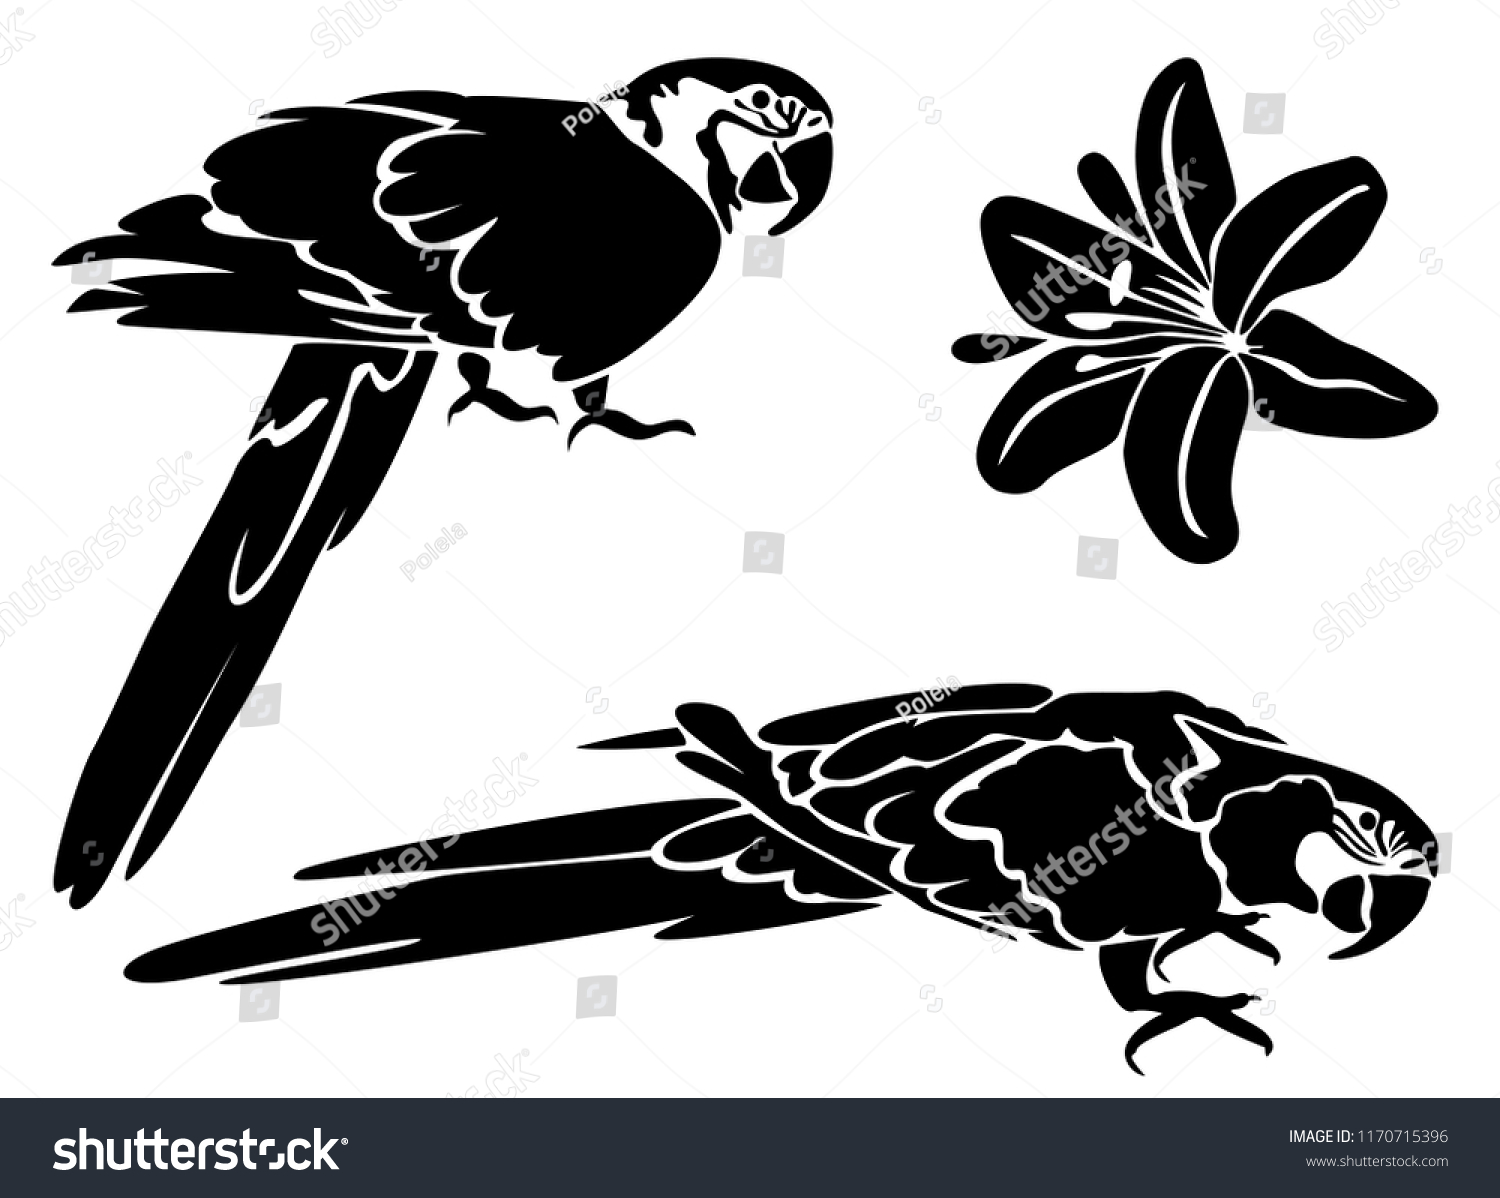 Stencil laser cutting set parrot macaw stock vector royalty free stencil for laser cutting set of parrot macaw and hibiscus flower vector tropical izmirmasajfo